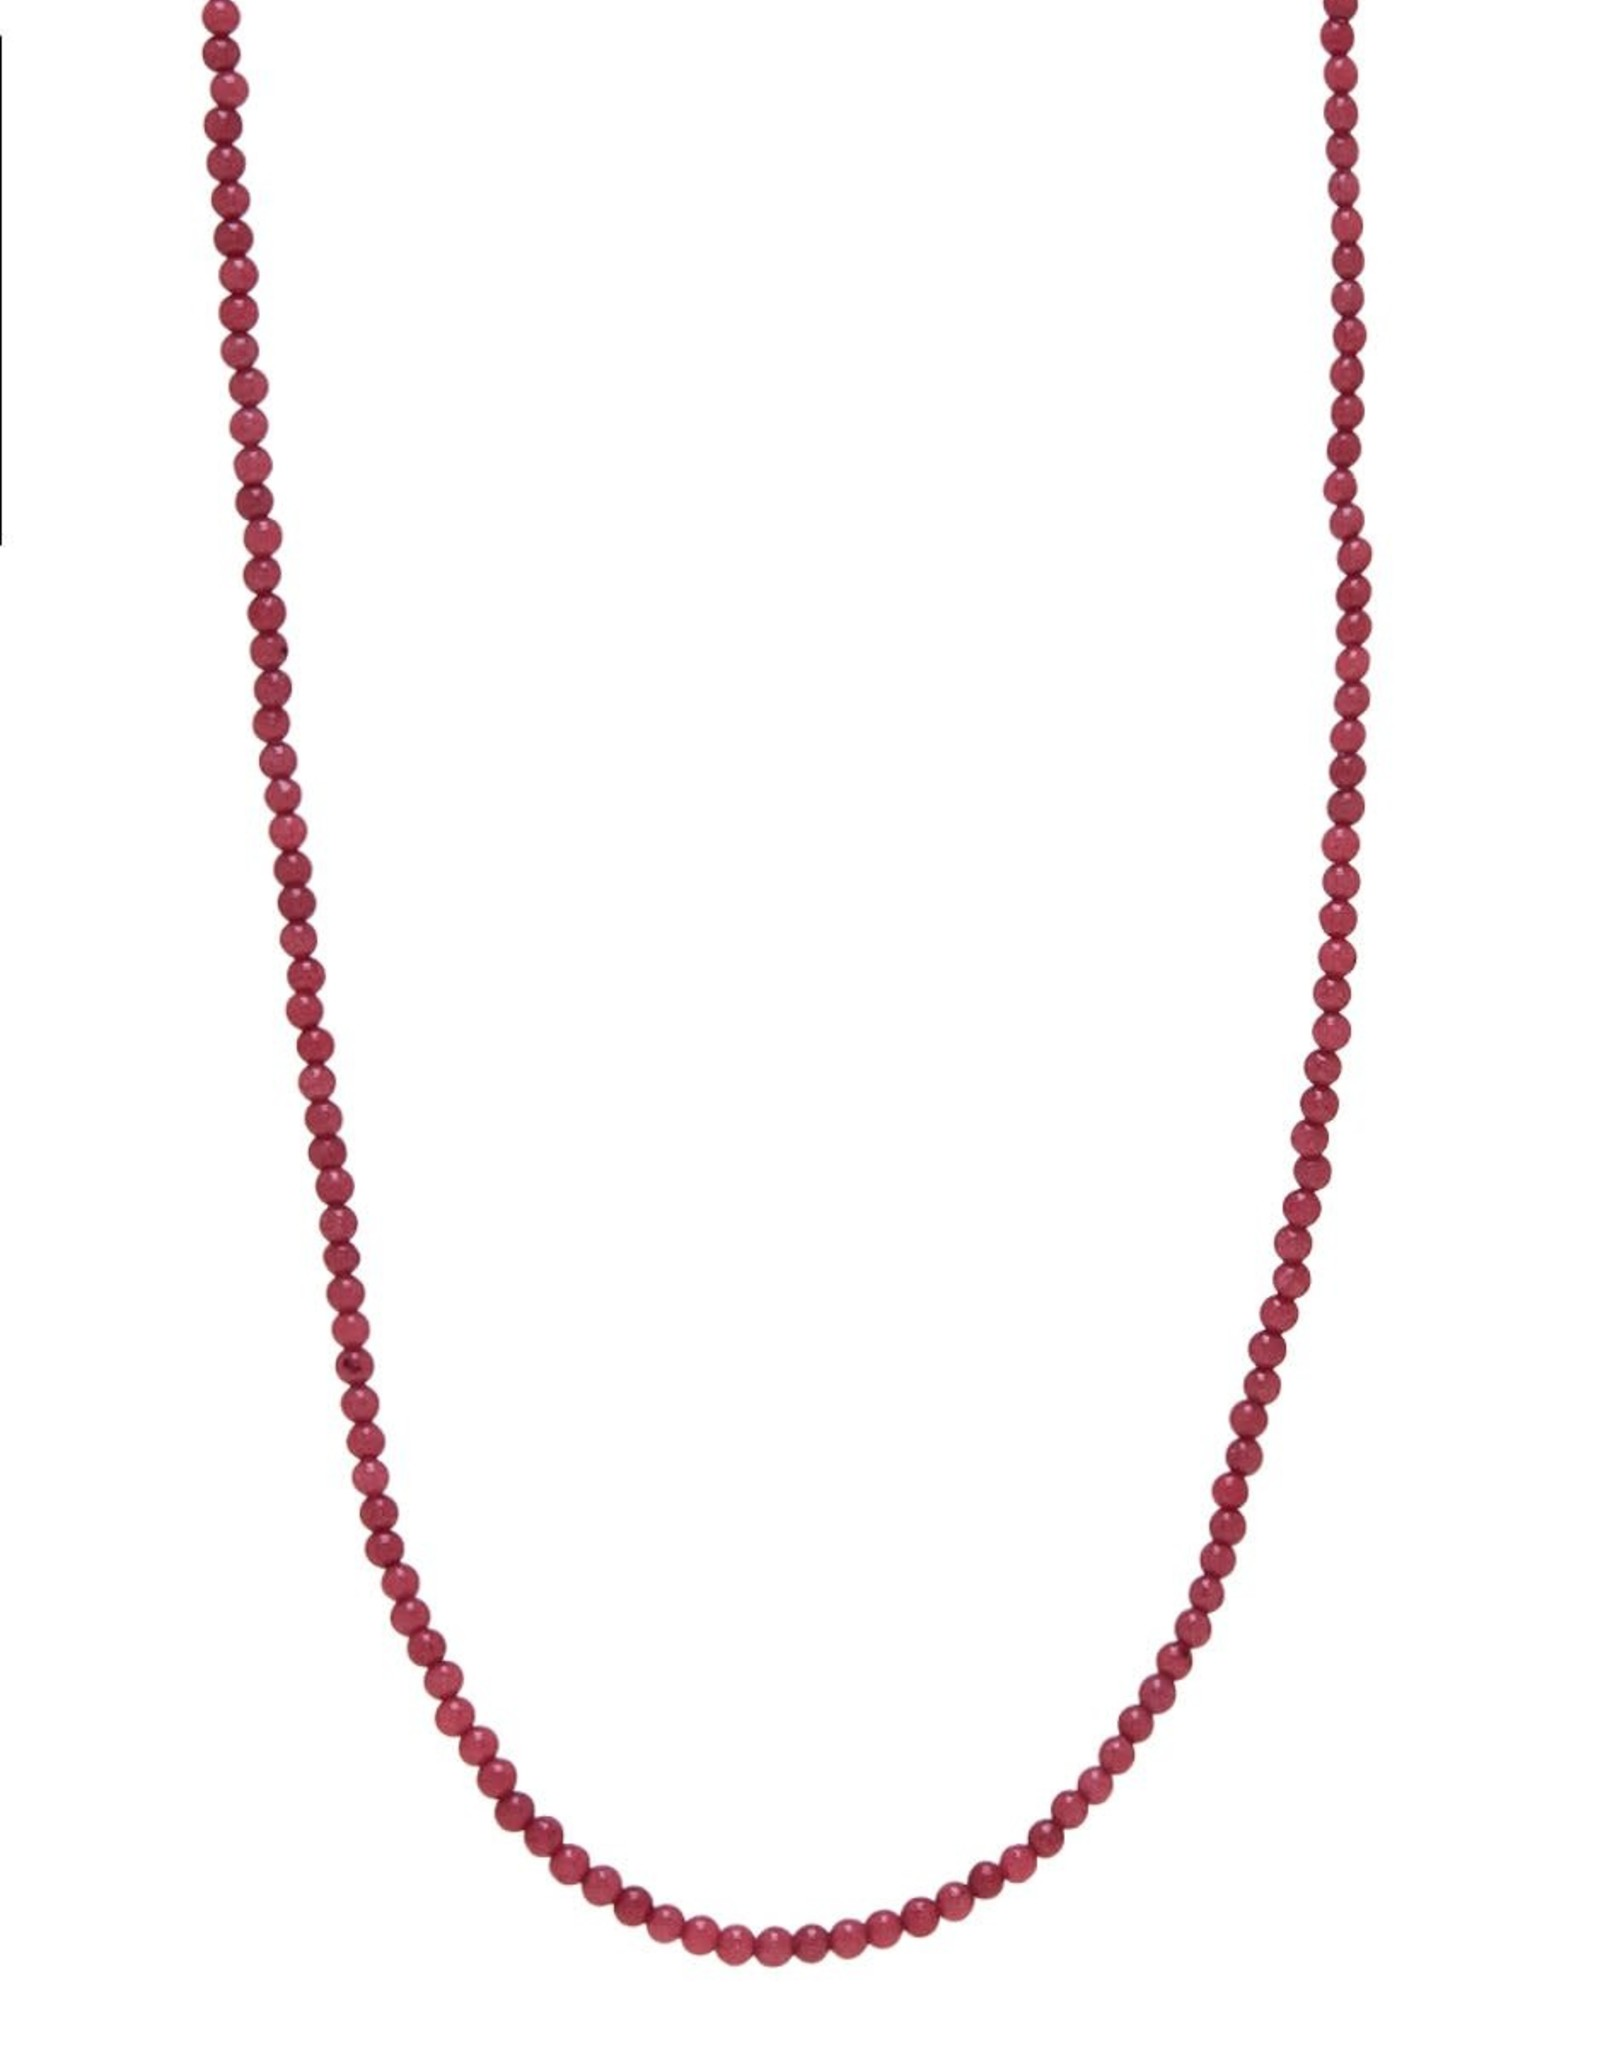 Xzota Xzota- Necklace Jade Pink Gold